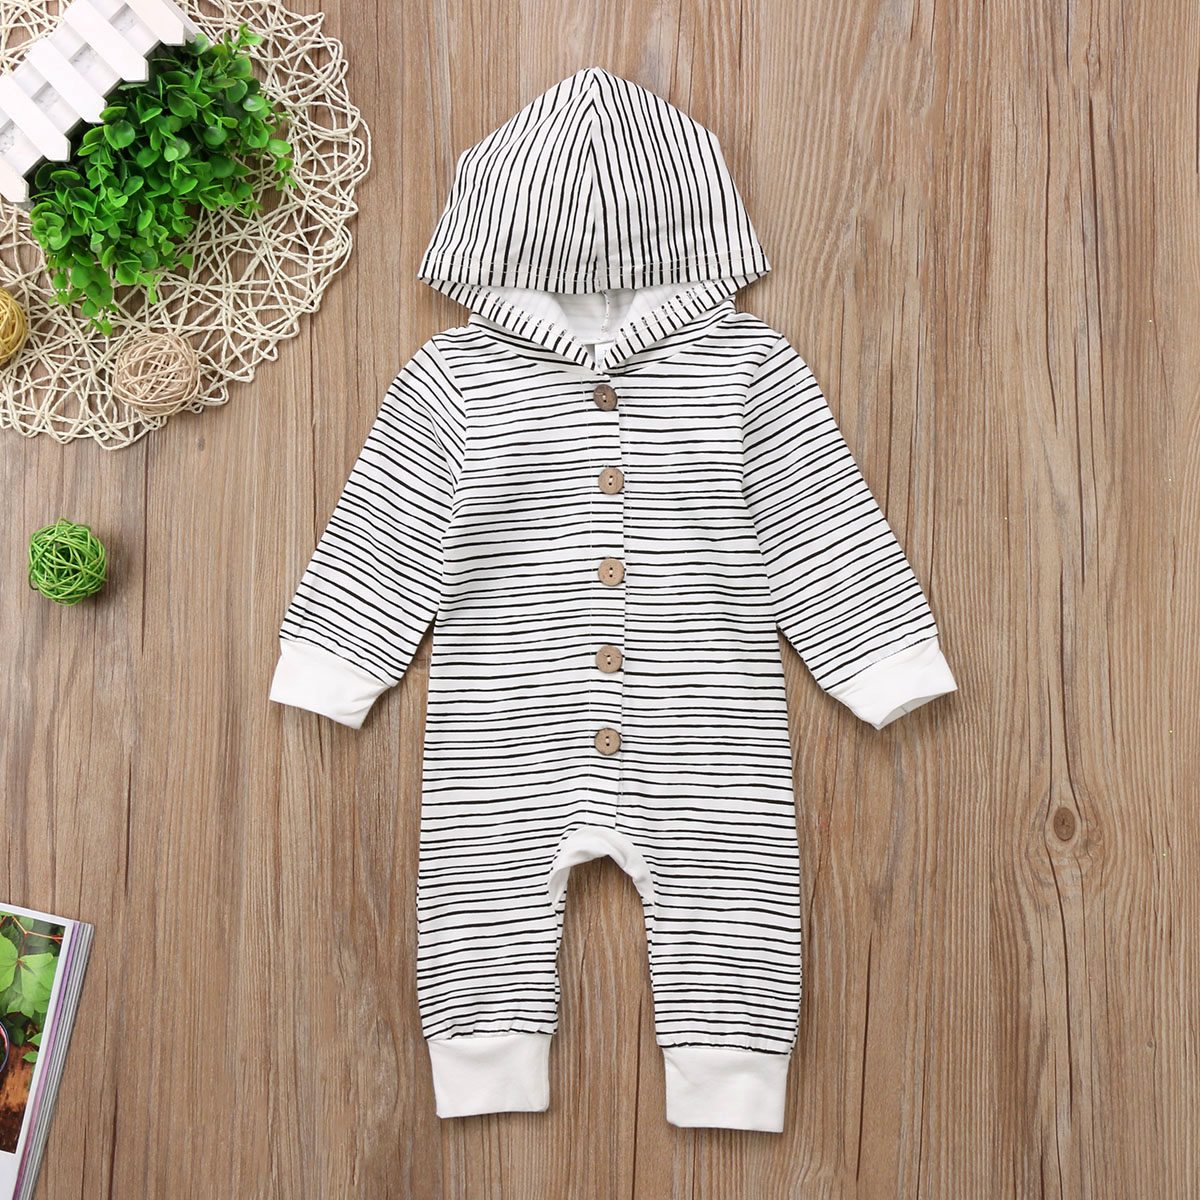 HTB1NZGFedzJ8KJjSspkq6zF7VXau 2018 Brand New Toddler Newborn Baby Boy Girl Warm Infant Romper Striped Jumpsuit Hooded Clothes Long Sleeve Outfit